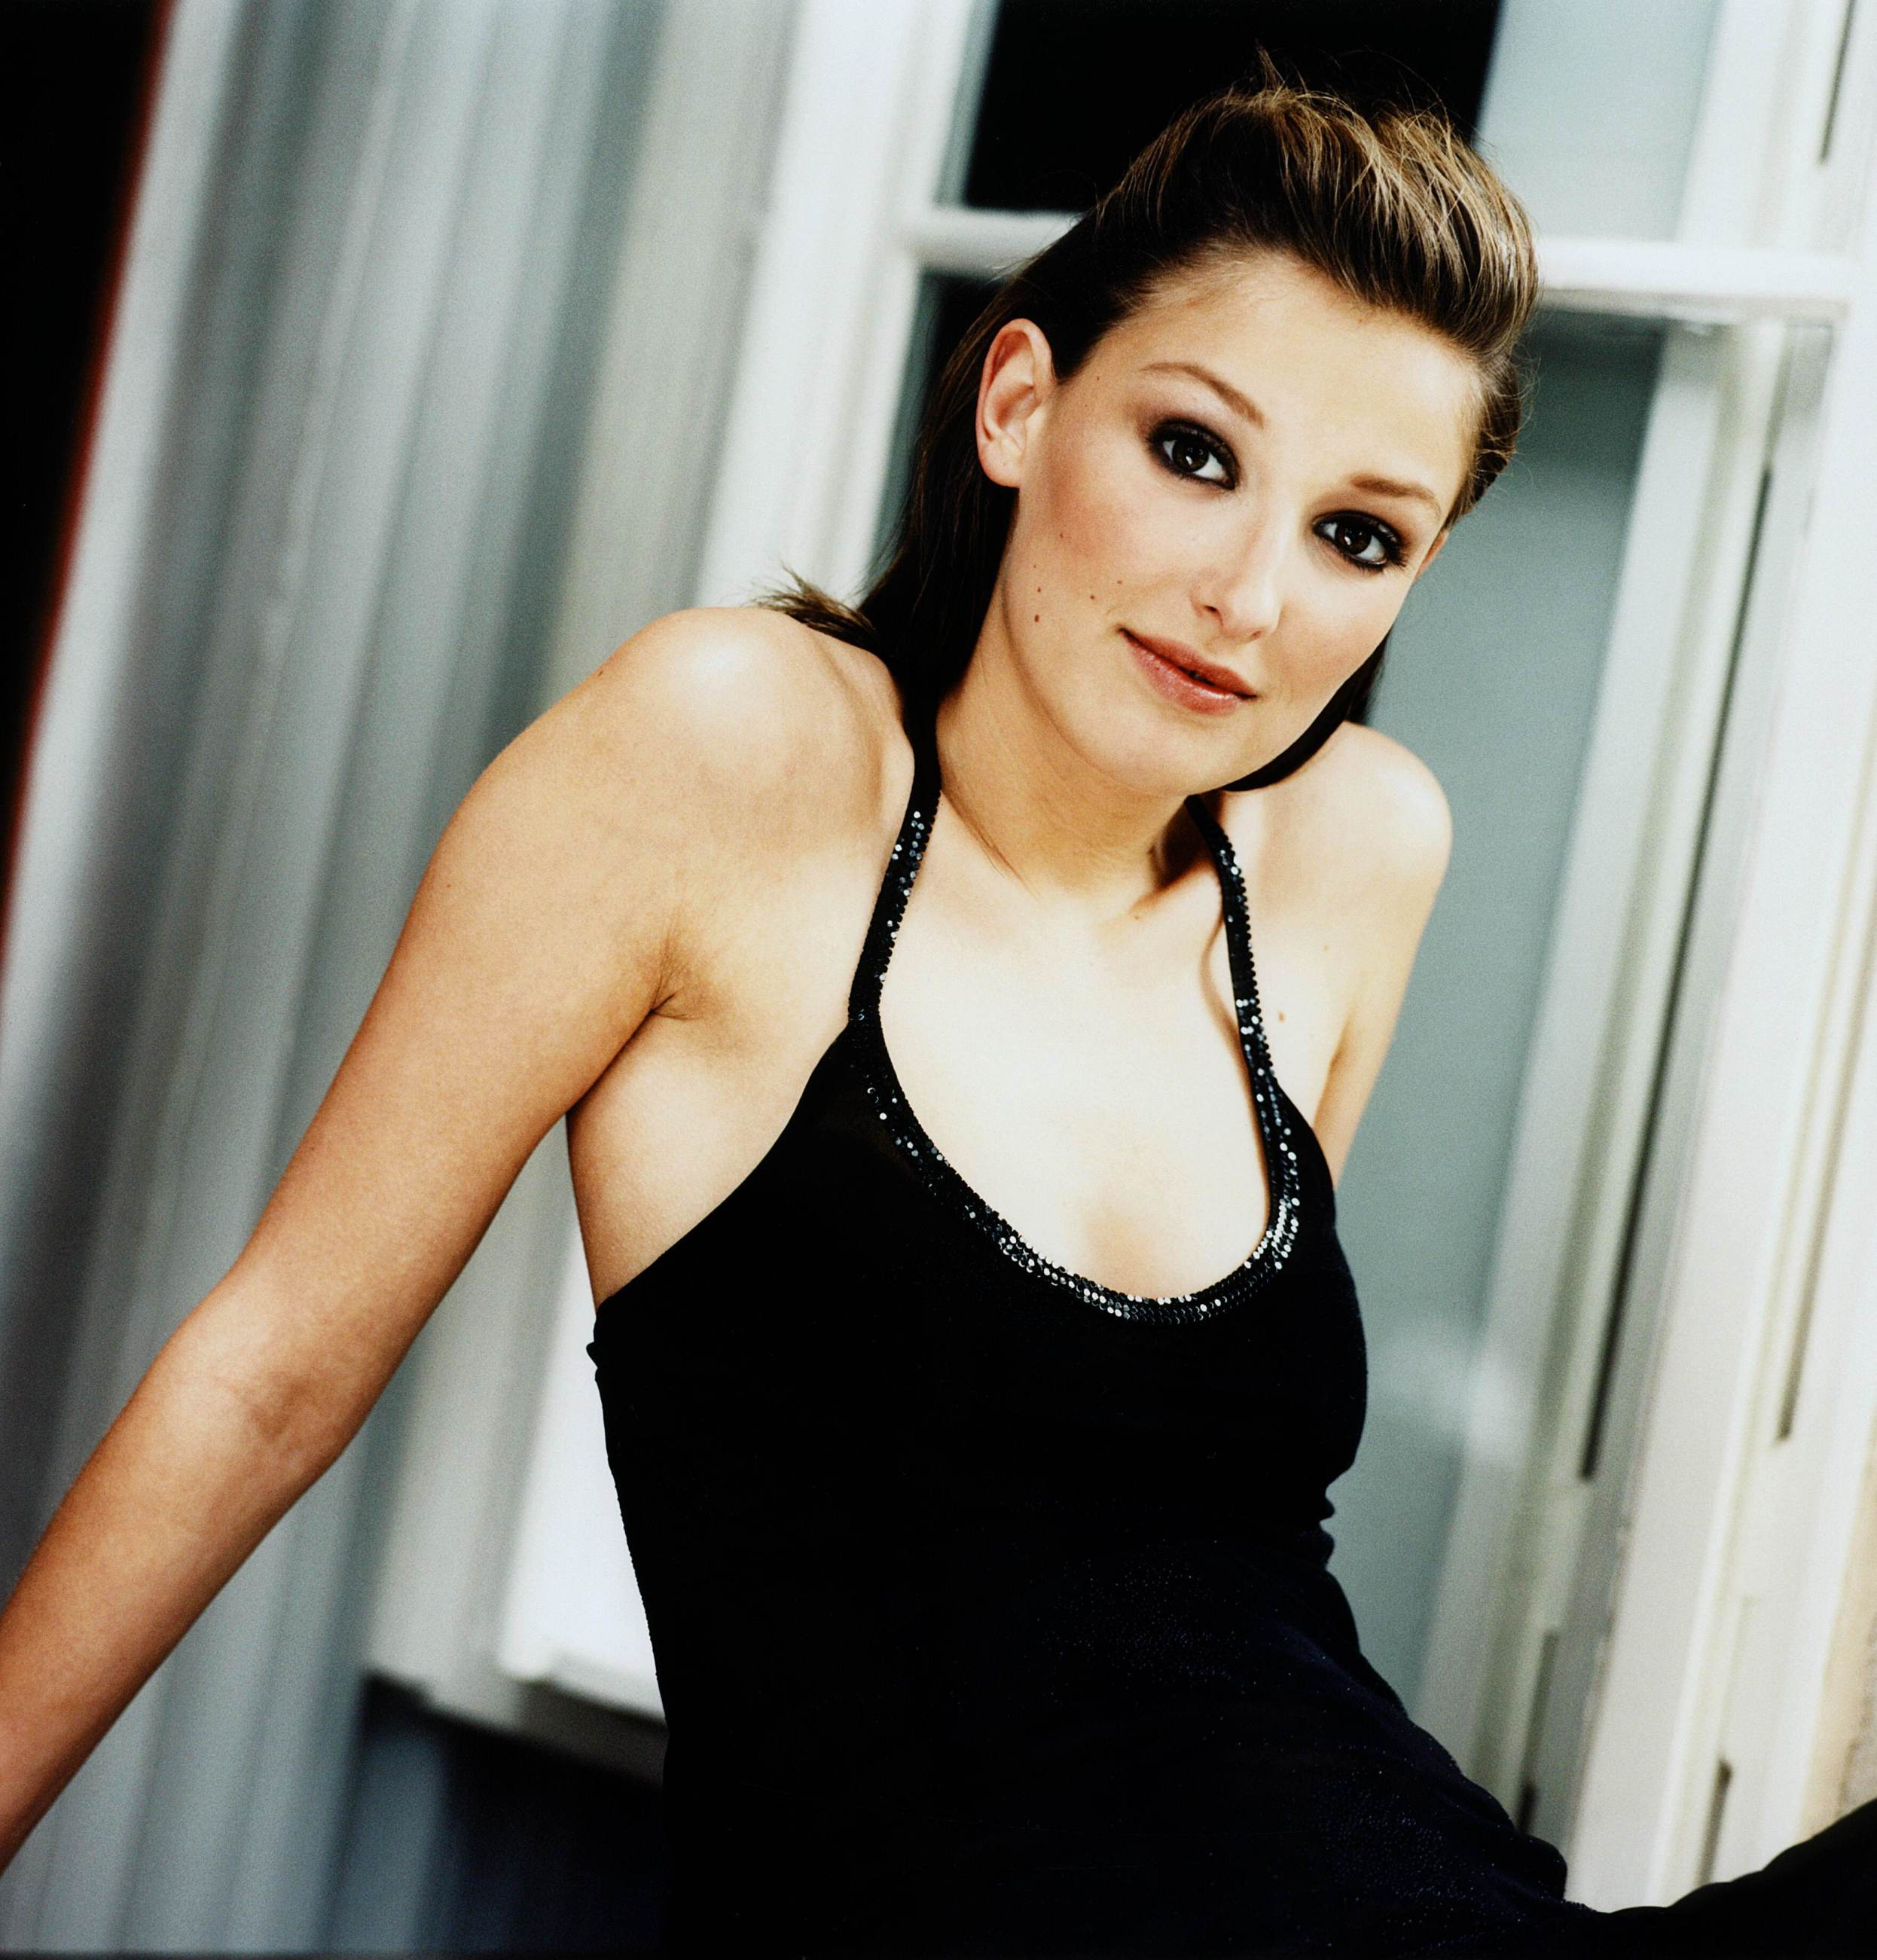 Alexandra Maria Lara photo 10 of 51 pics, wallpaper